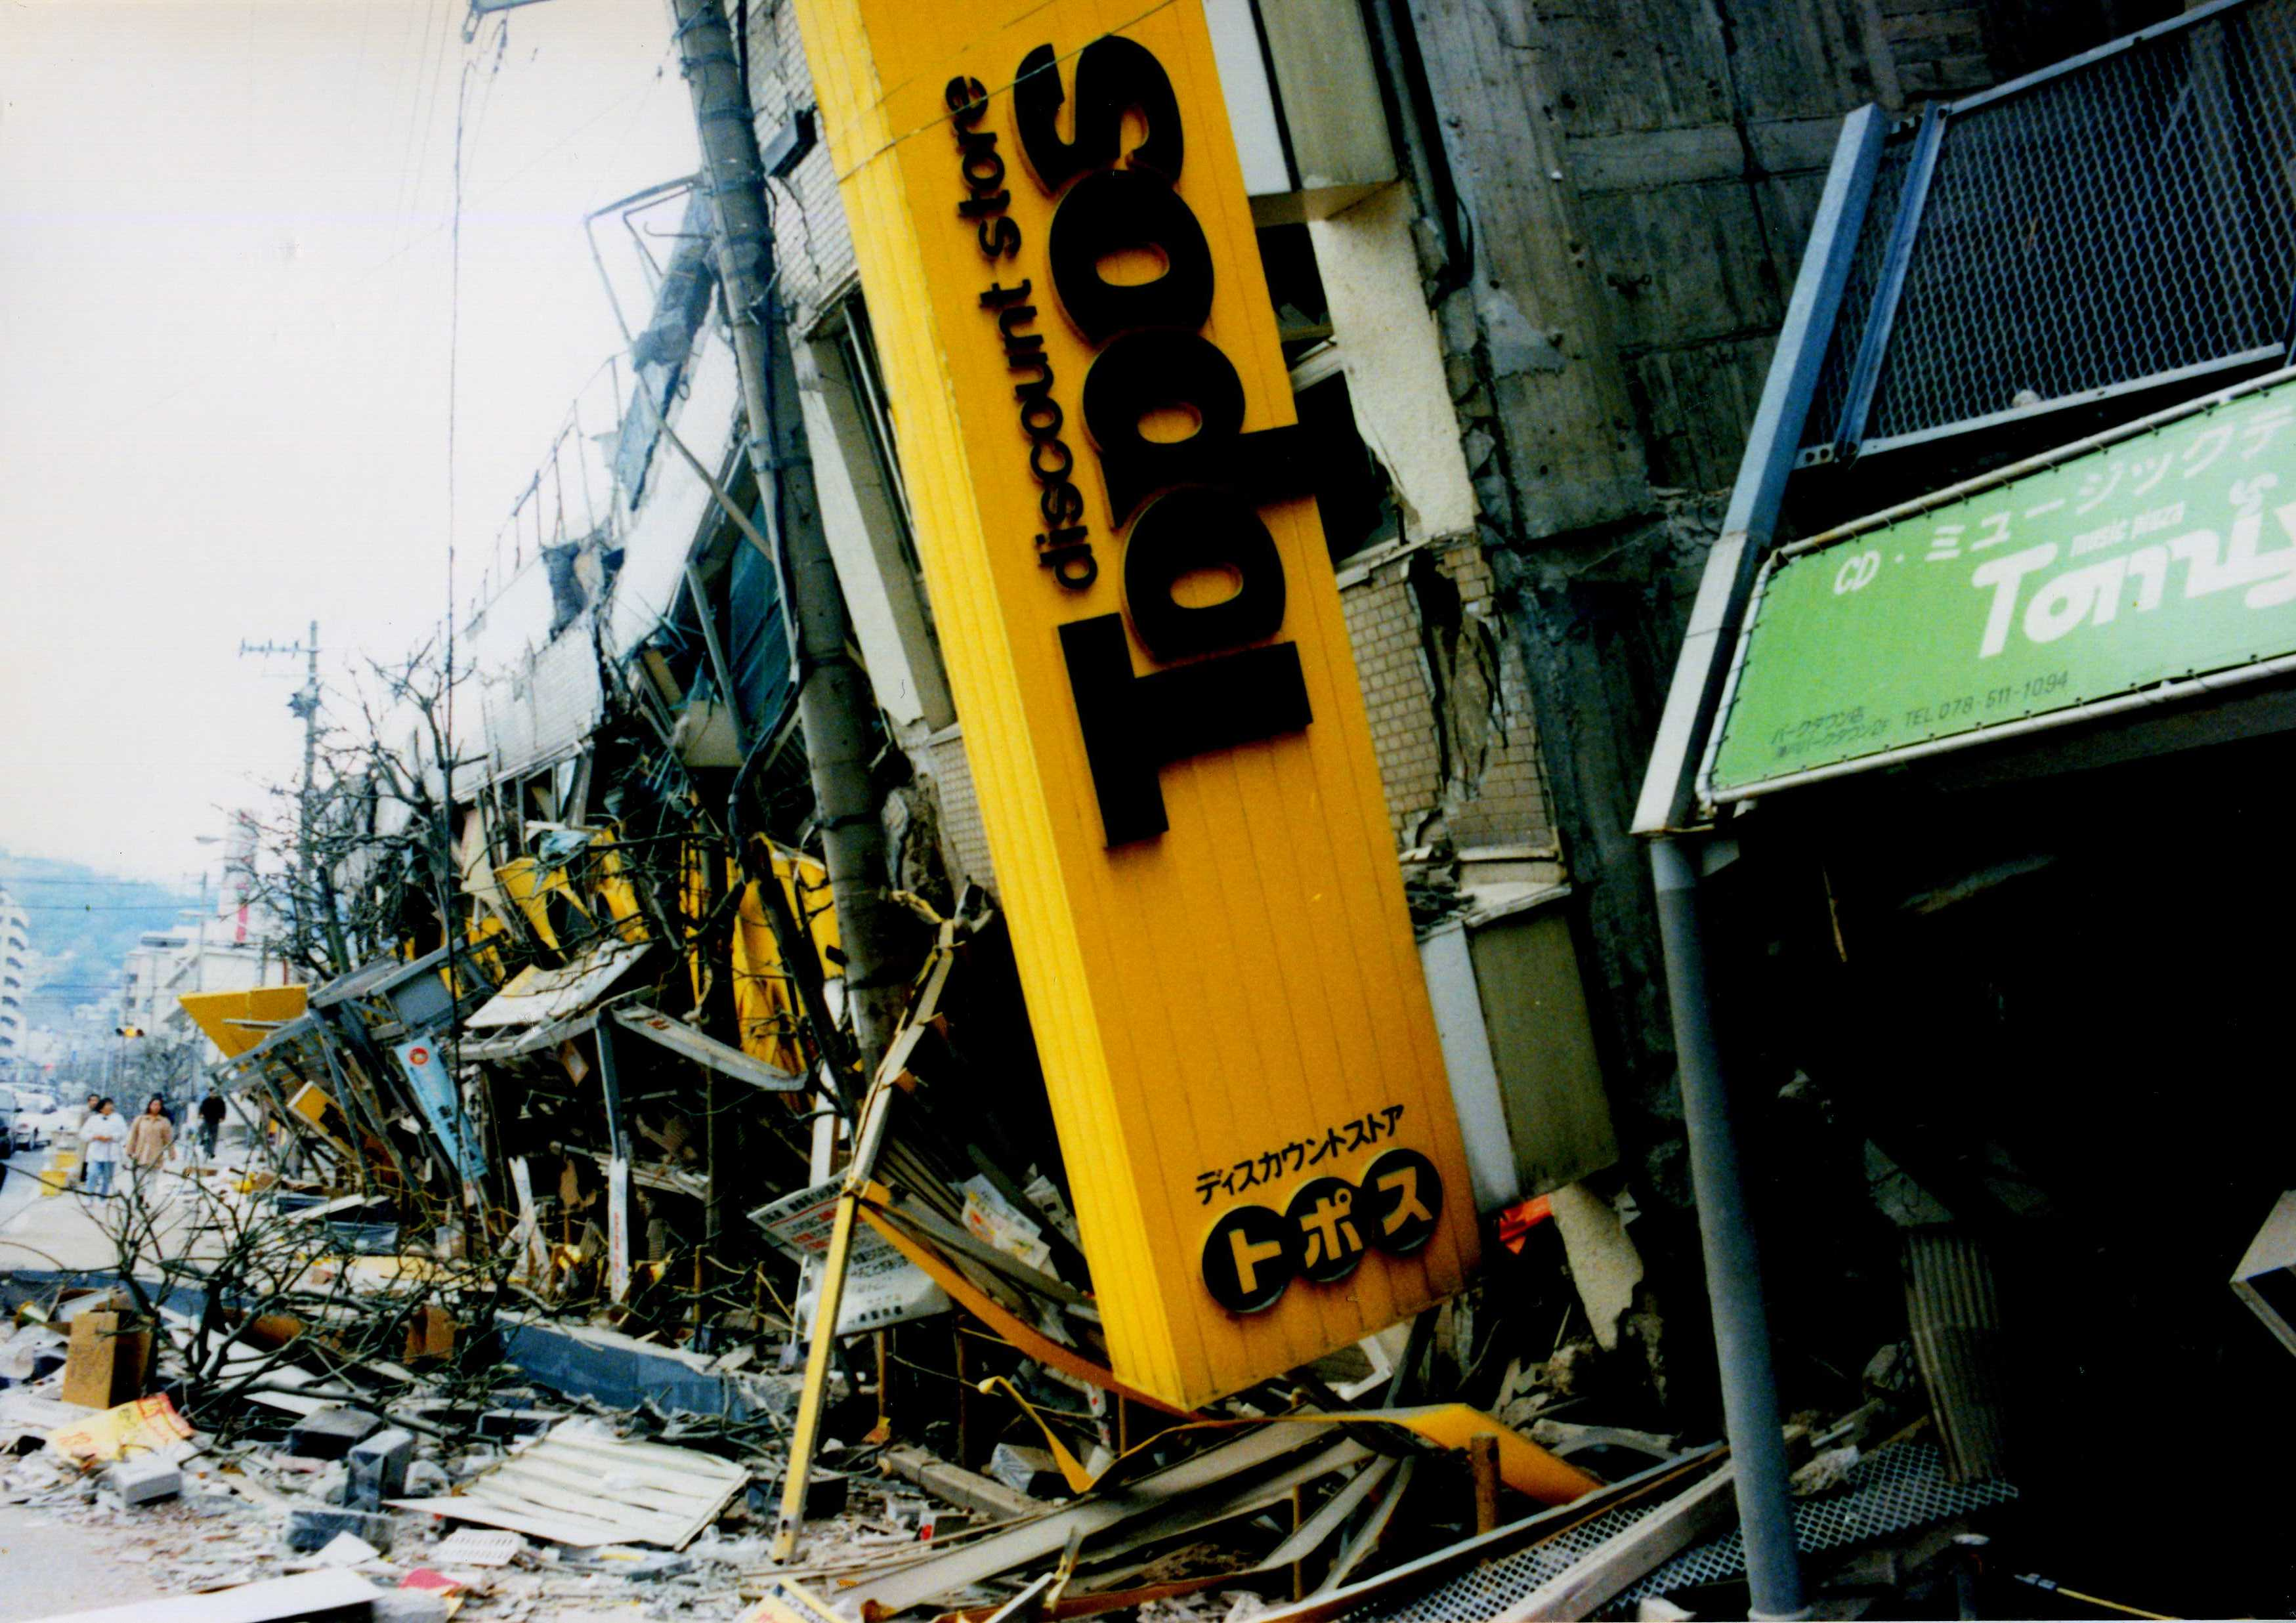 earthquake hits kobe japan 1995 Watch video kobe, japan suffered a massive earthquake 23 years ago the city holds lessons for how officials can respond and rebuild after natural disasters.